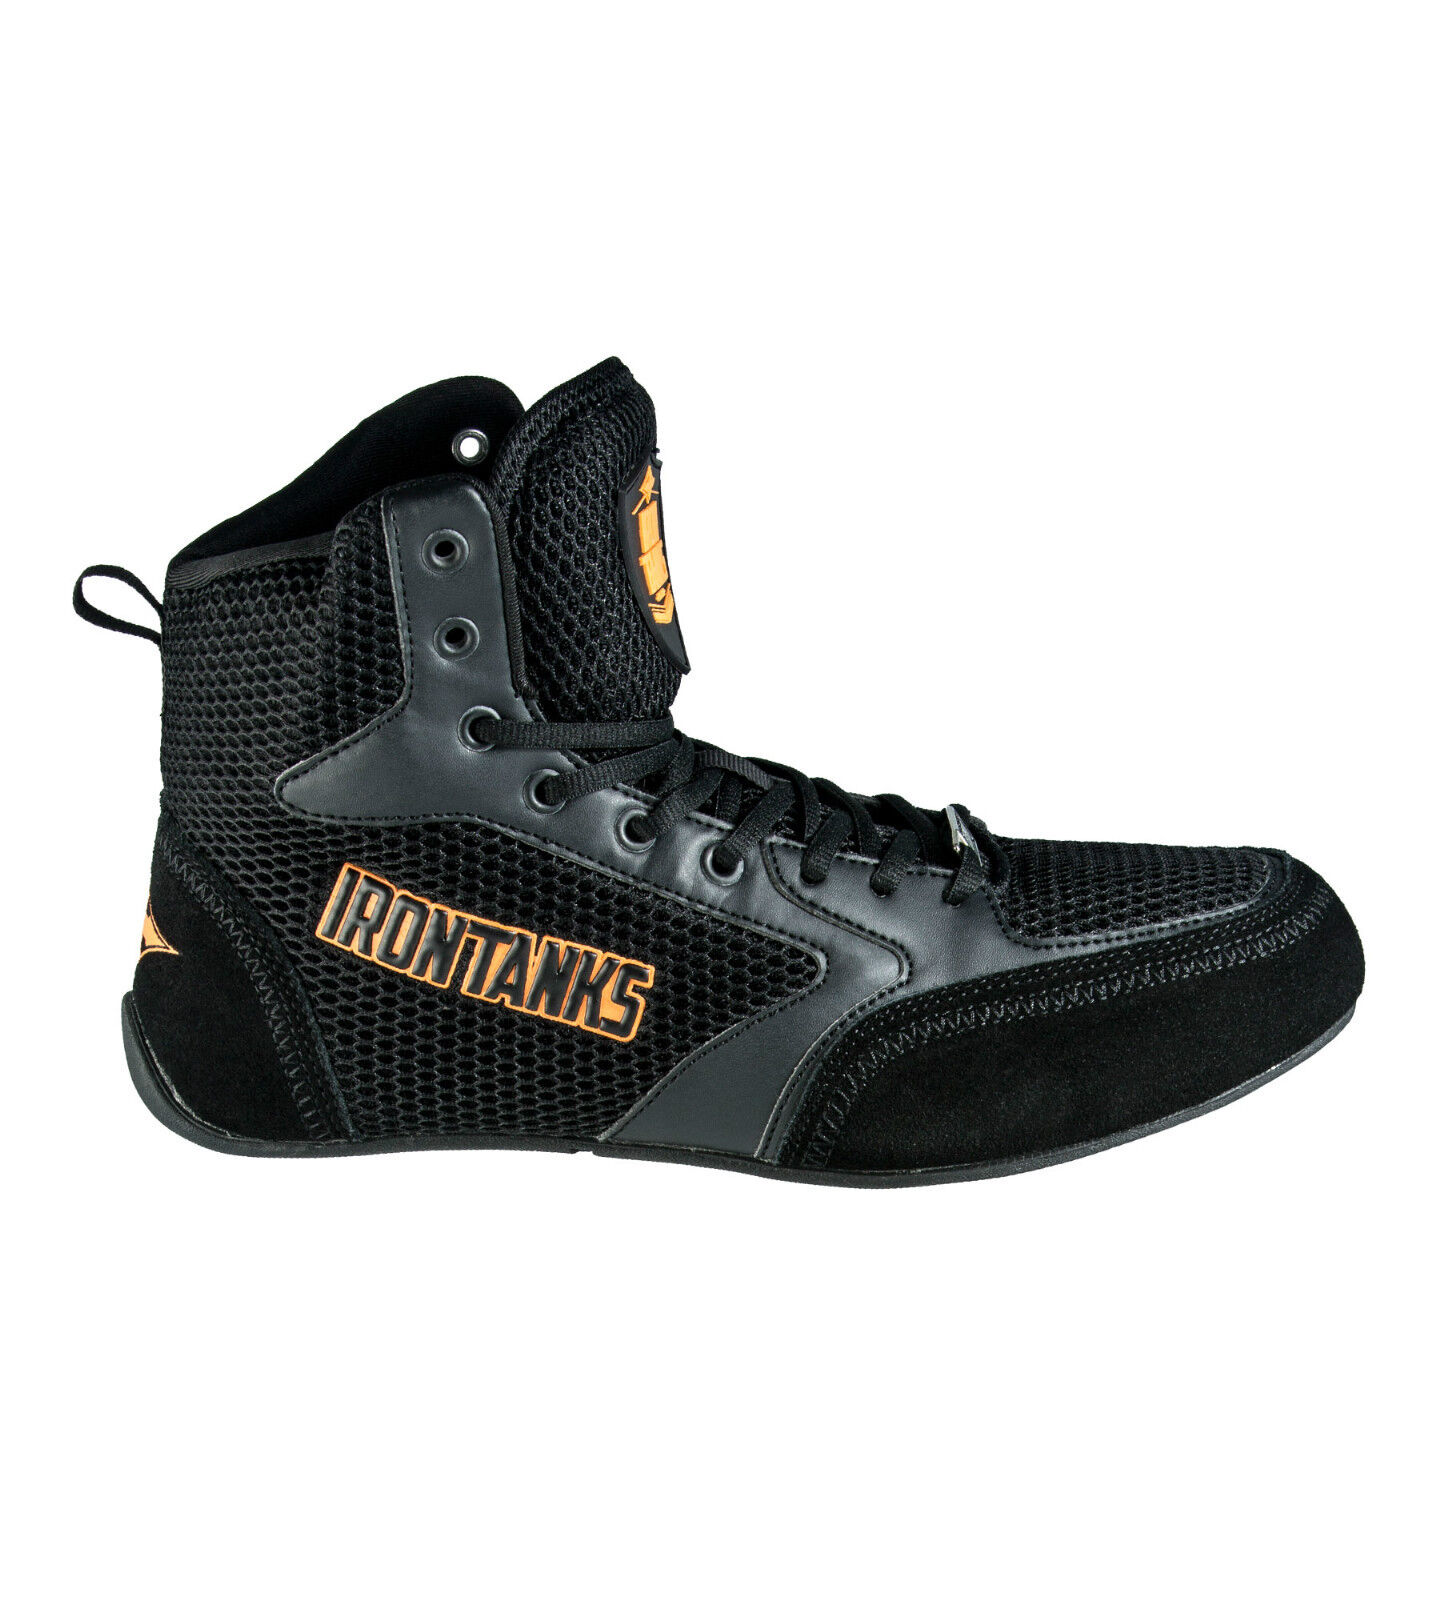 802c47ffc38f Details about TITAN MENS HIGH TOP GYM SHOES BOOTS WEIGHT LIFTING  BODYBUILDING POWER S113 BLACK